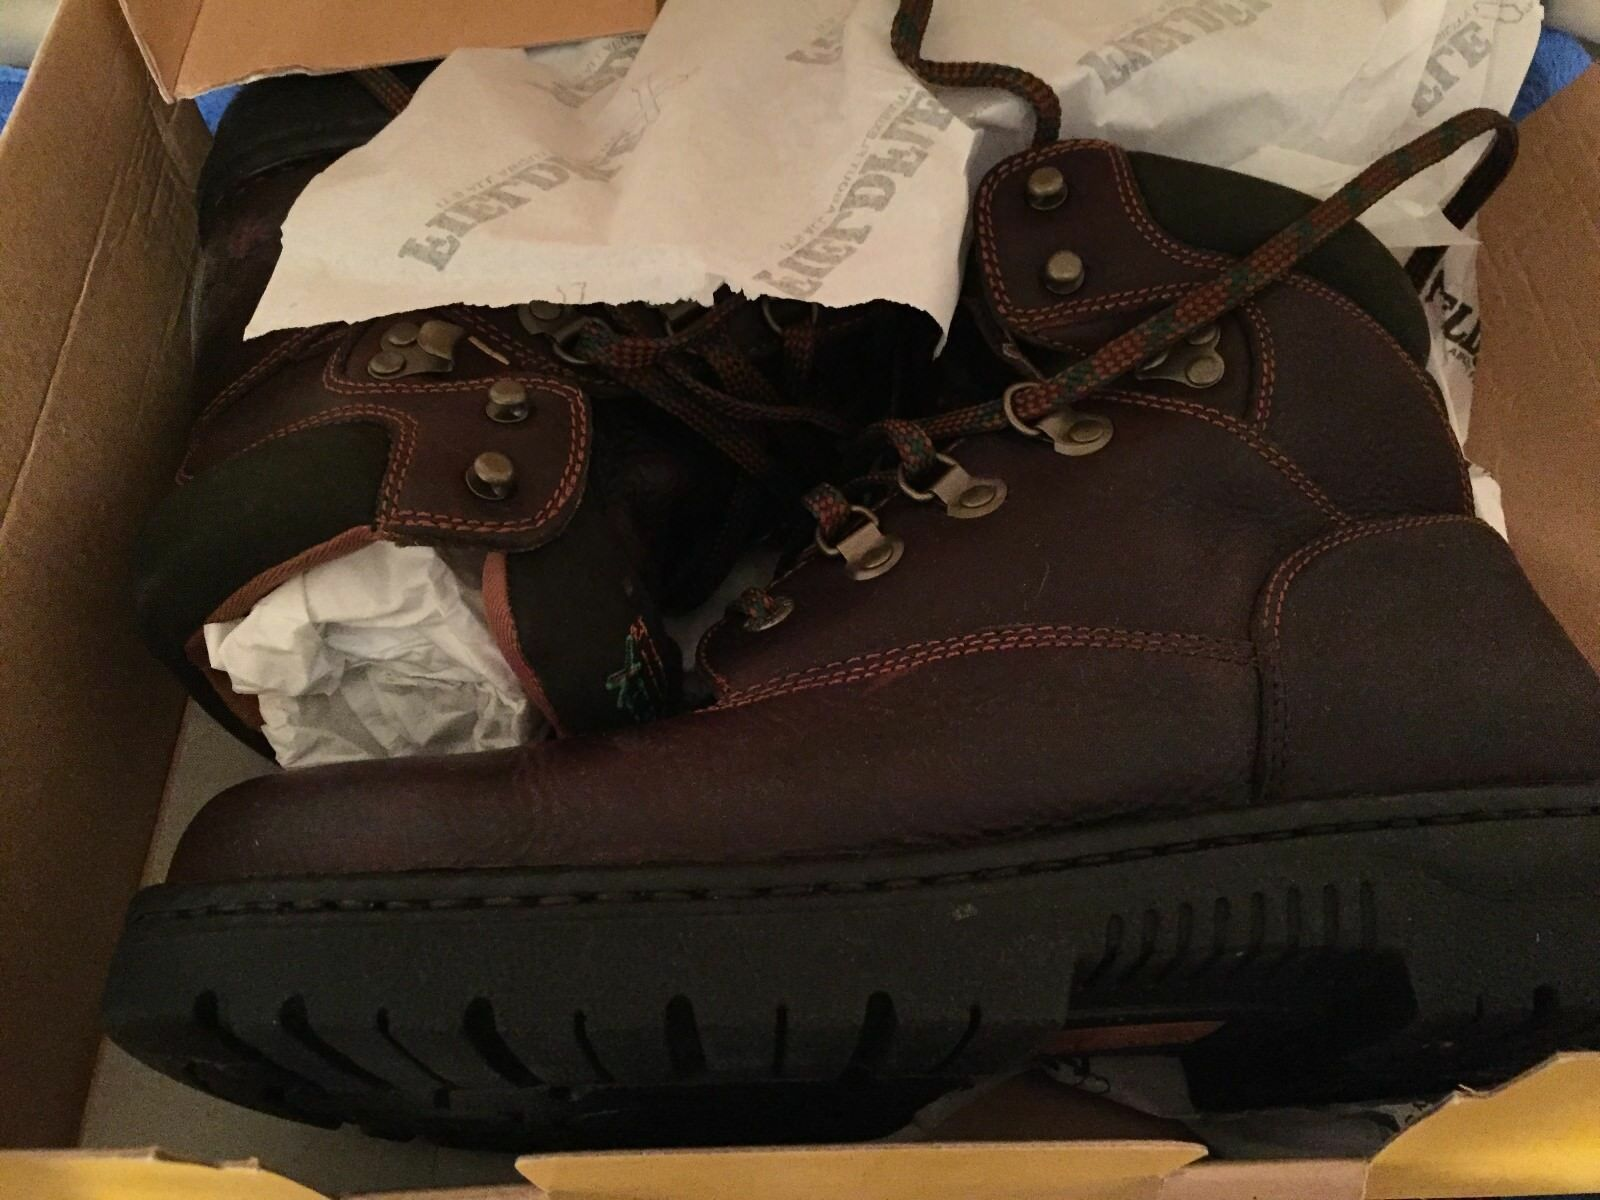 NEW IN THE BOX CAROLINA FIELD FLEX BROWN LEATHER WORK BOOTS 10.5 EE